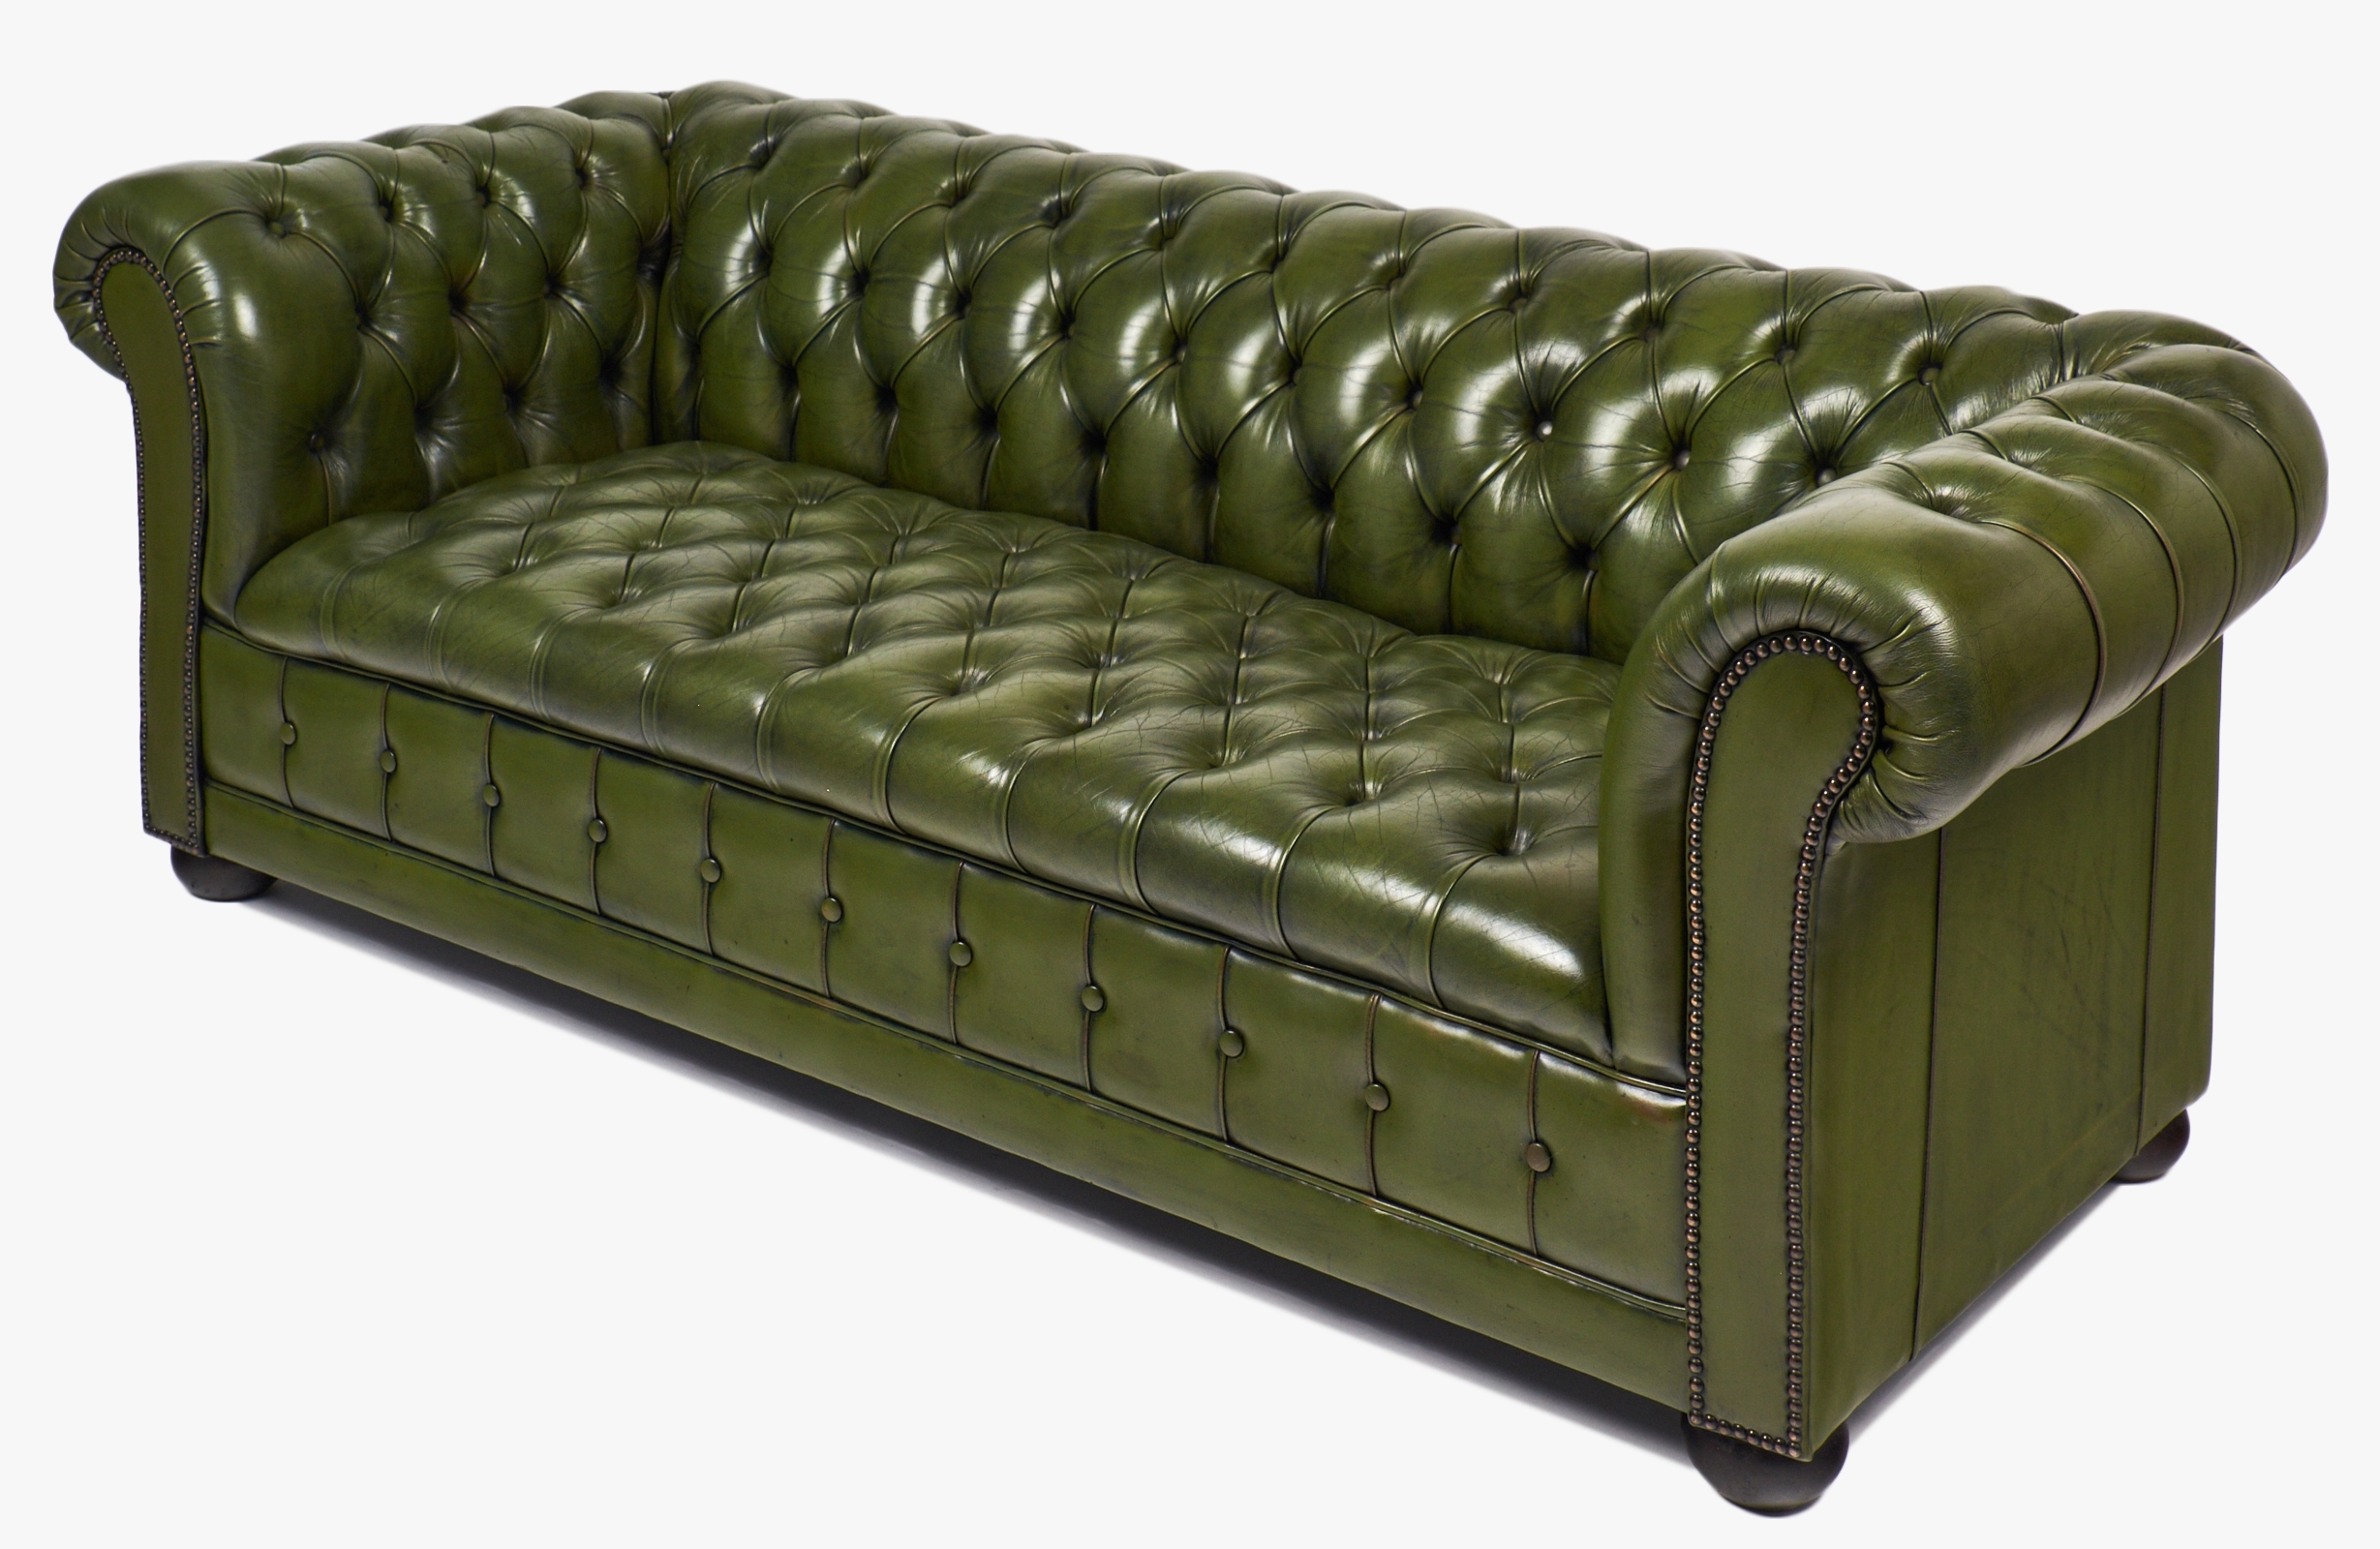 Vintage Chesterfield Sofas Throughout Most Recent Vintage Green Leather Chesterfield Sofa – Jean Marc Fray (View 12 of 20)